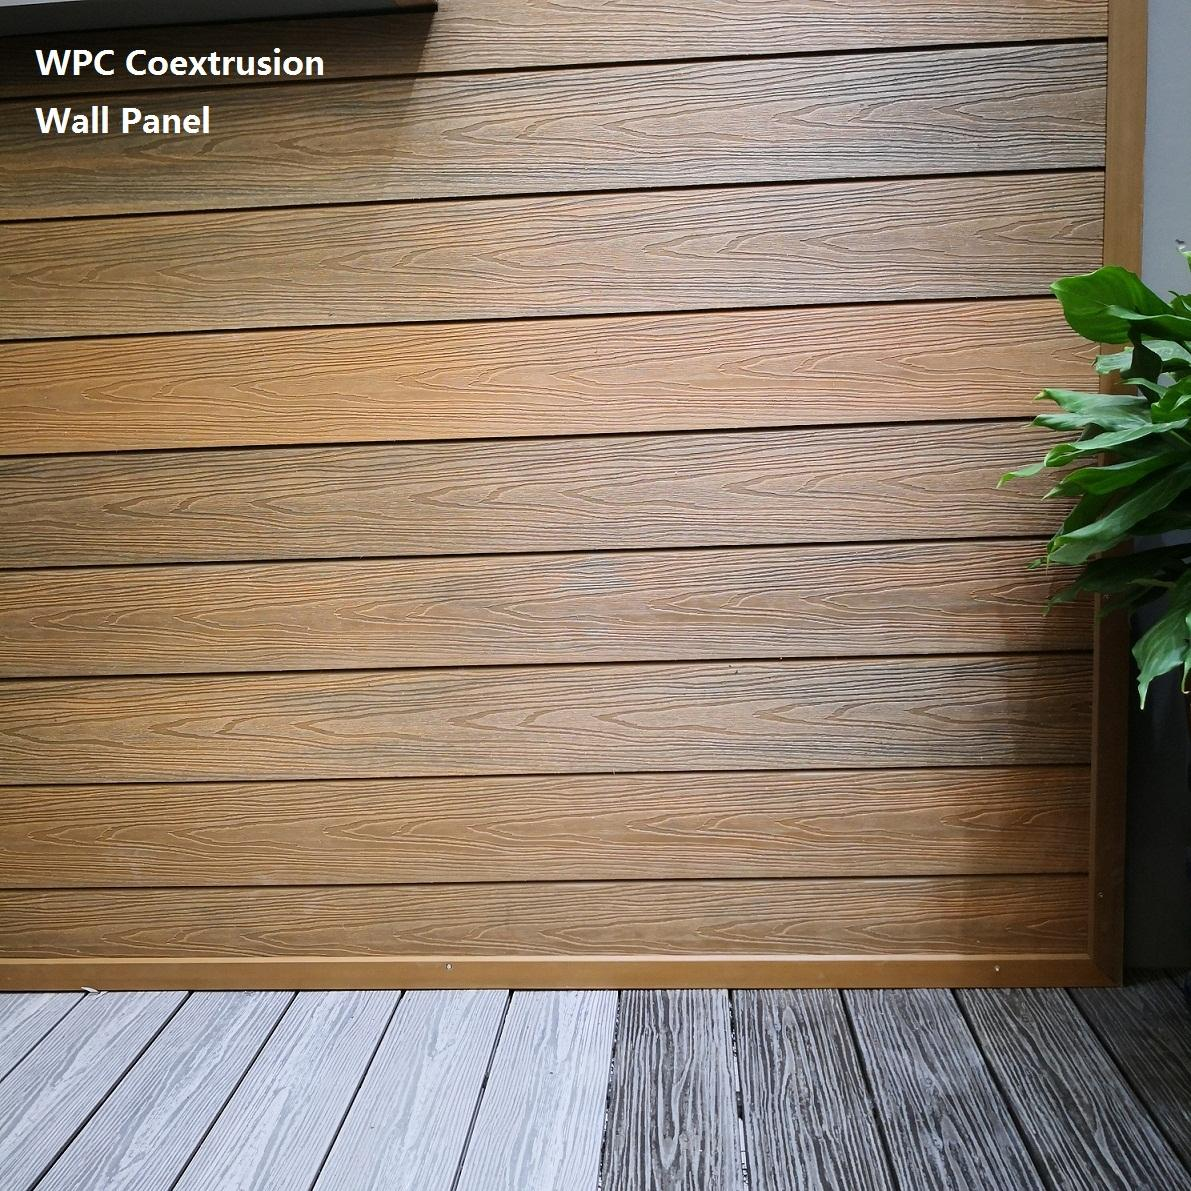 house cladding exterior wall composite wood fence fireproof decorative wall panel exterior tile siding timber cladding green